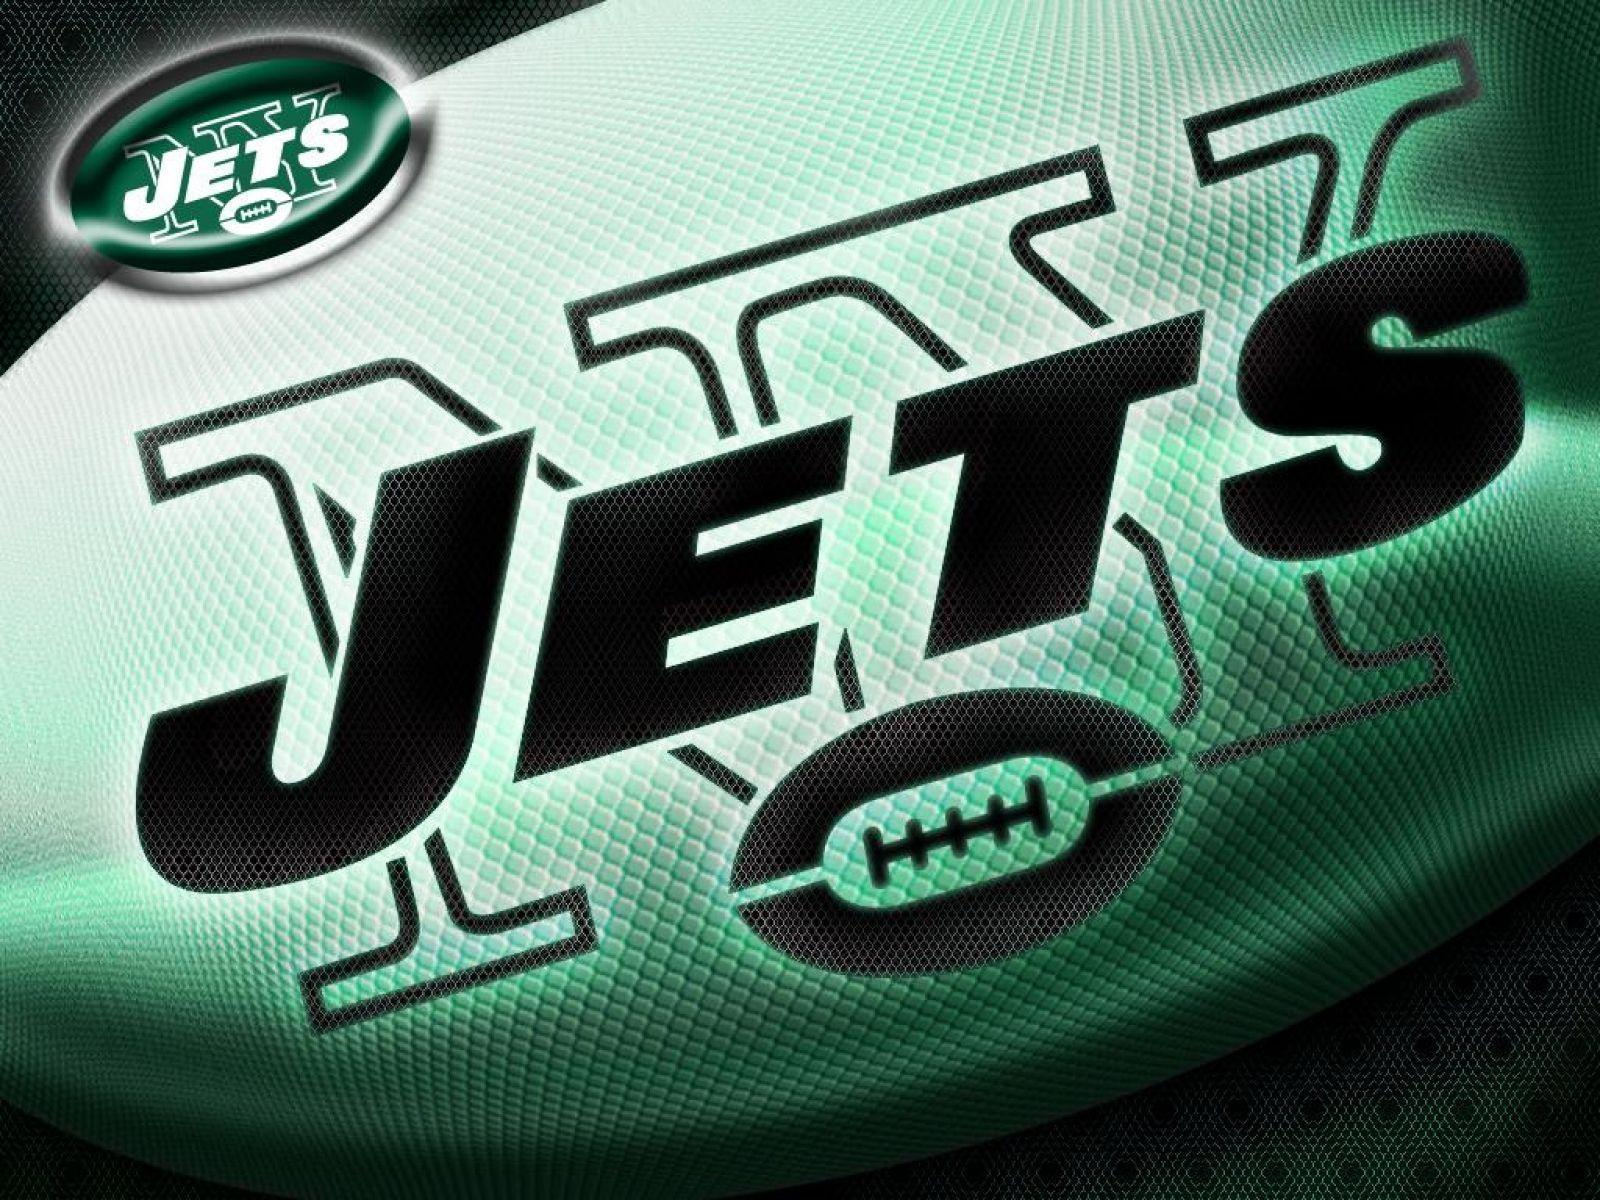 New York Jets Wallpapers at Wallpaperist